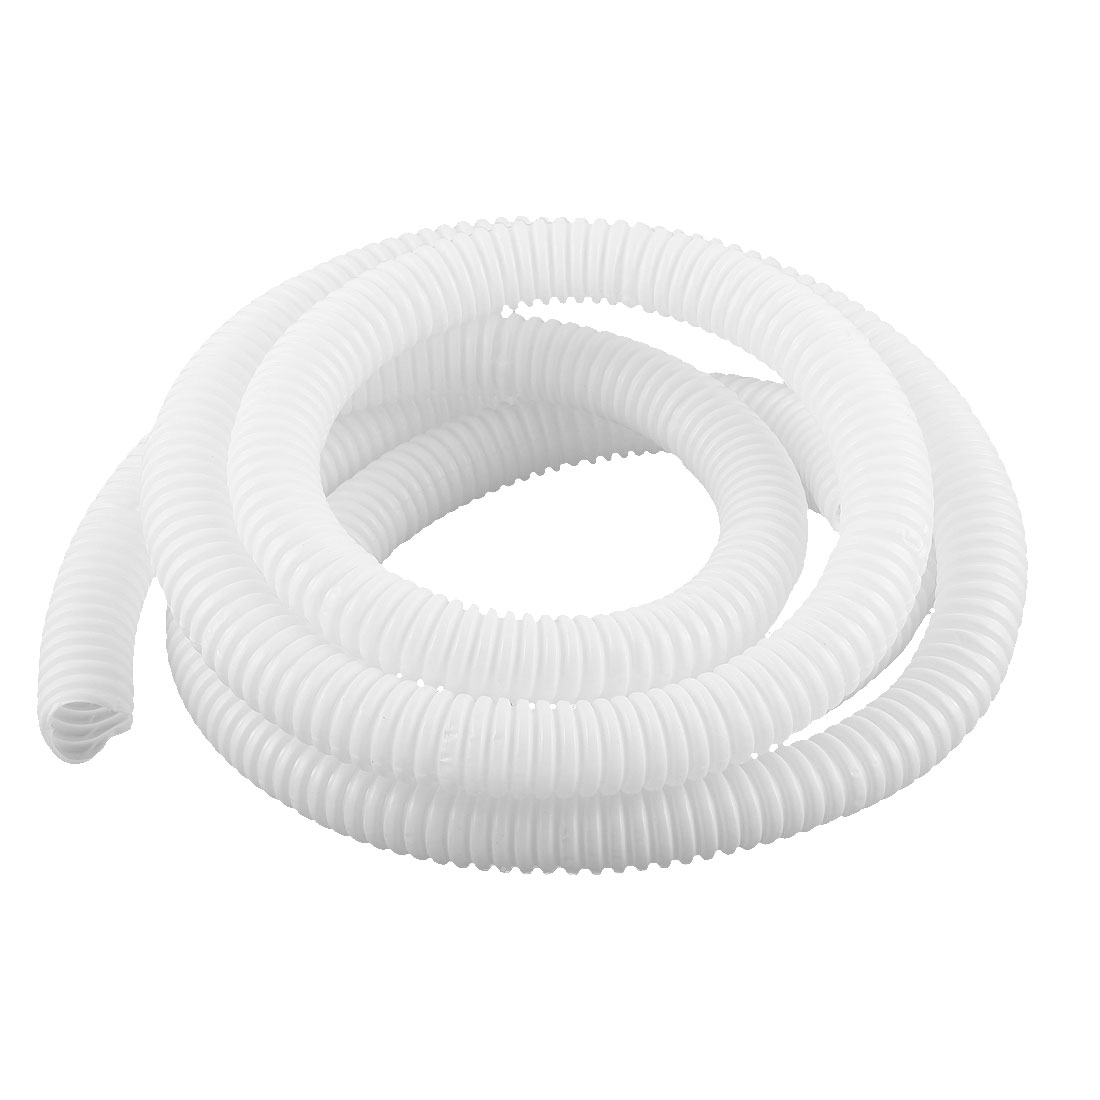 Buy Cable Conduit And Get Free Shipping On Outside Electrical Wiring